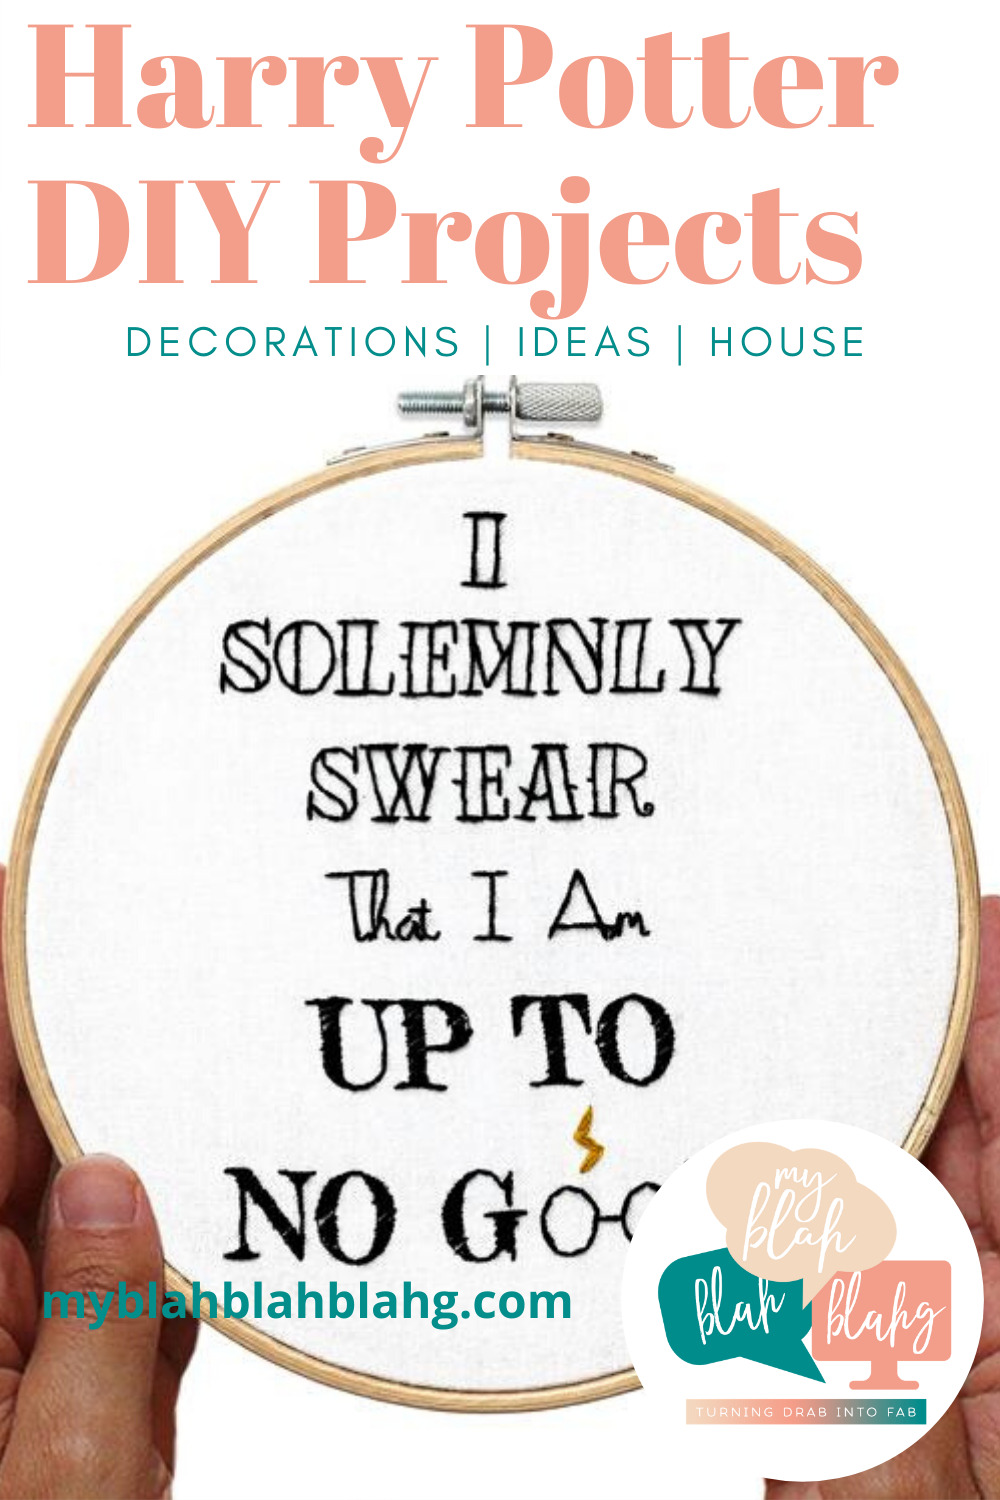 Harry Potter DIY projects are fun for anyone who loves Harry Potter! Plan a party, because you're going to want an excuse to make every single one! #myblahblahblahgblog #harrypotterdiyprojects